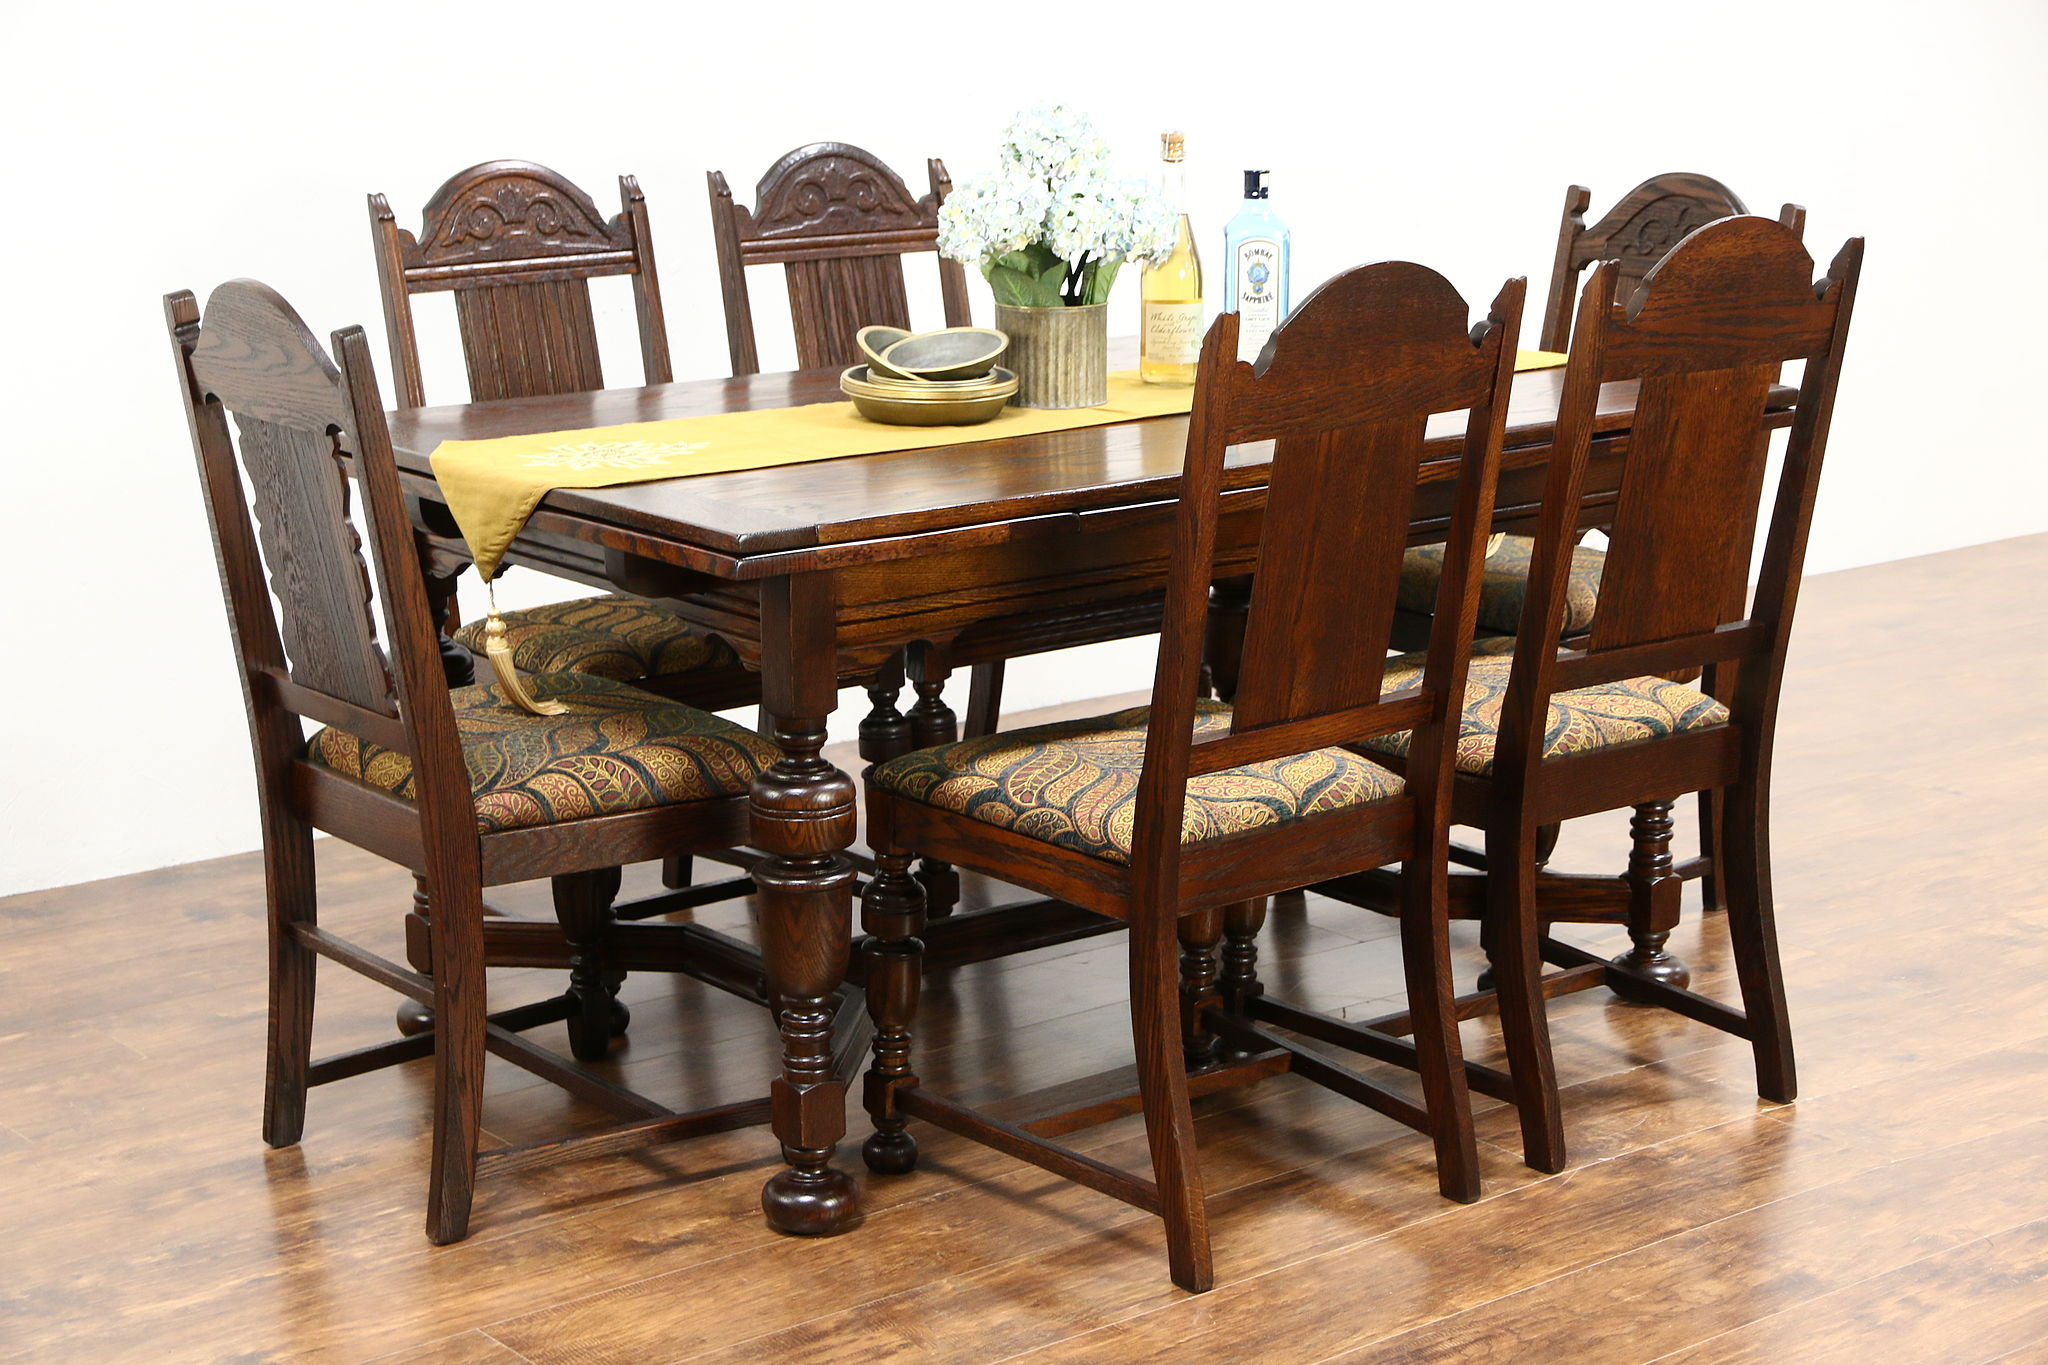 Brilliant English Tudor Antique 1920 Oak Dining Set Table 2 Leaves 6 Chairs Cjindustries Chair Design For Home Cjindustriesco